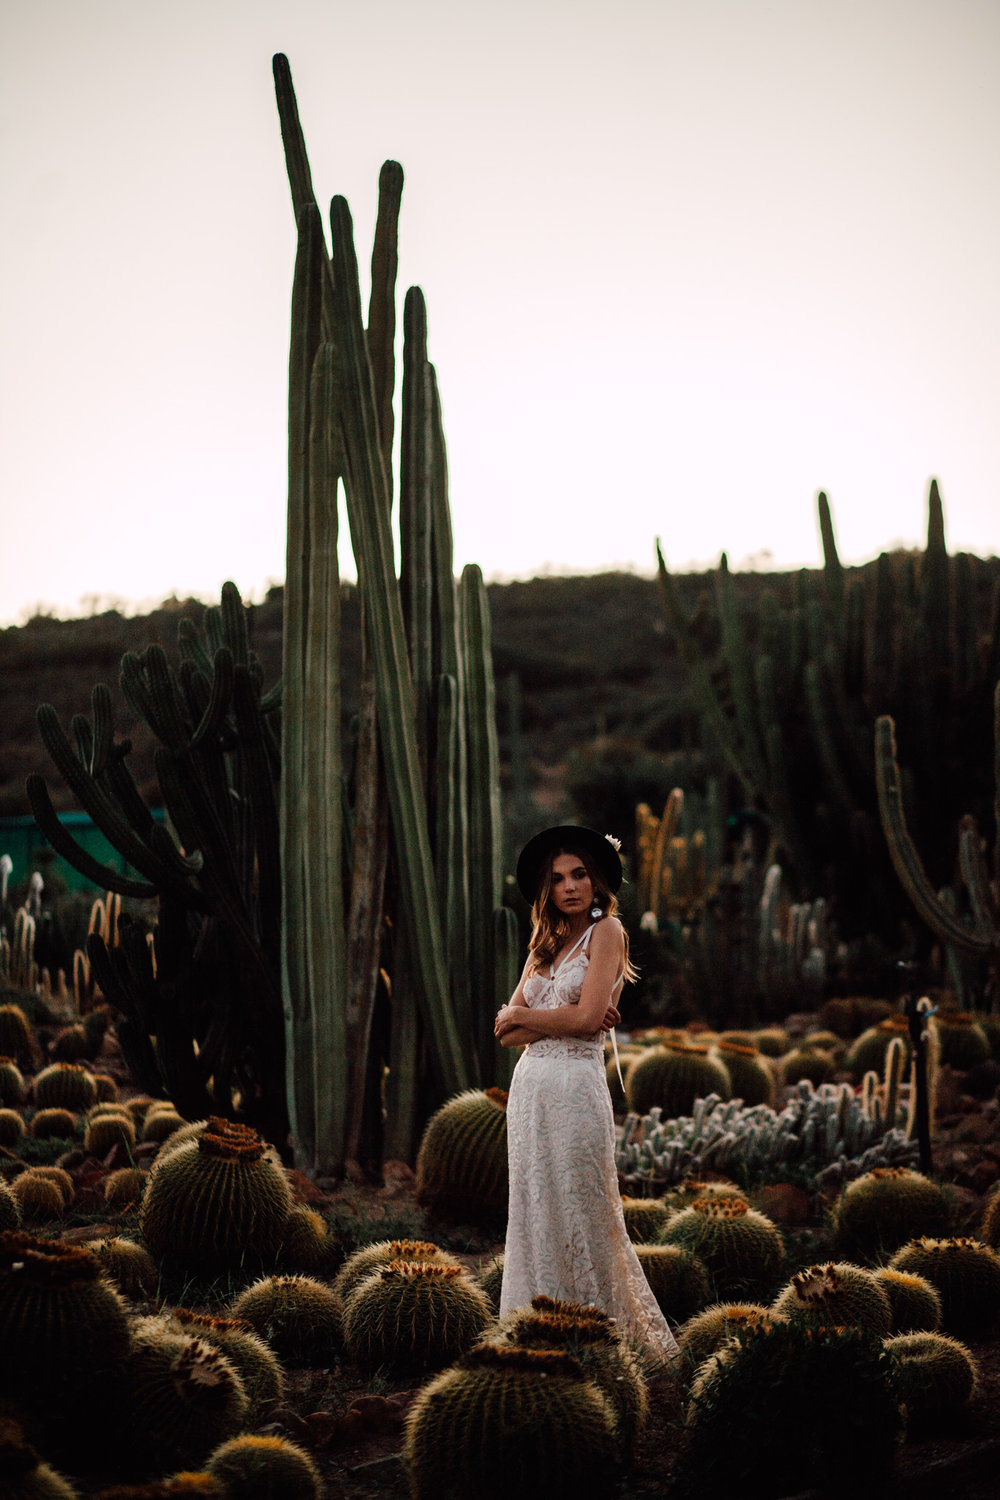 Cape-Town-Pia-Anna-Christian-Wedding-Photography-South-Africa-Bride-Cactus-42.jpg